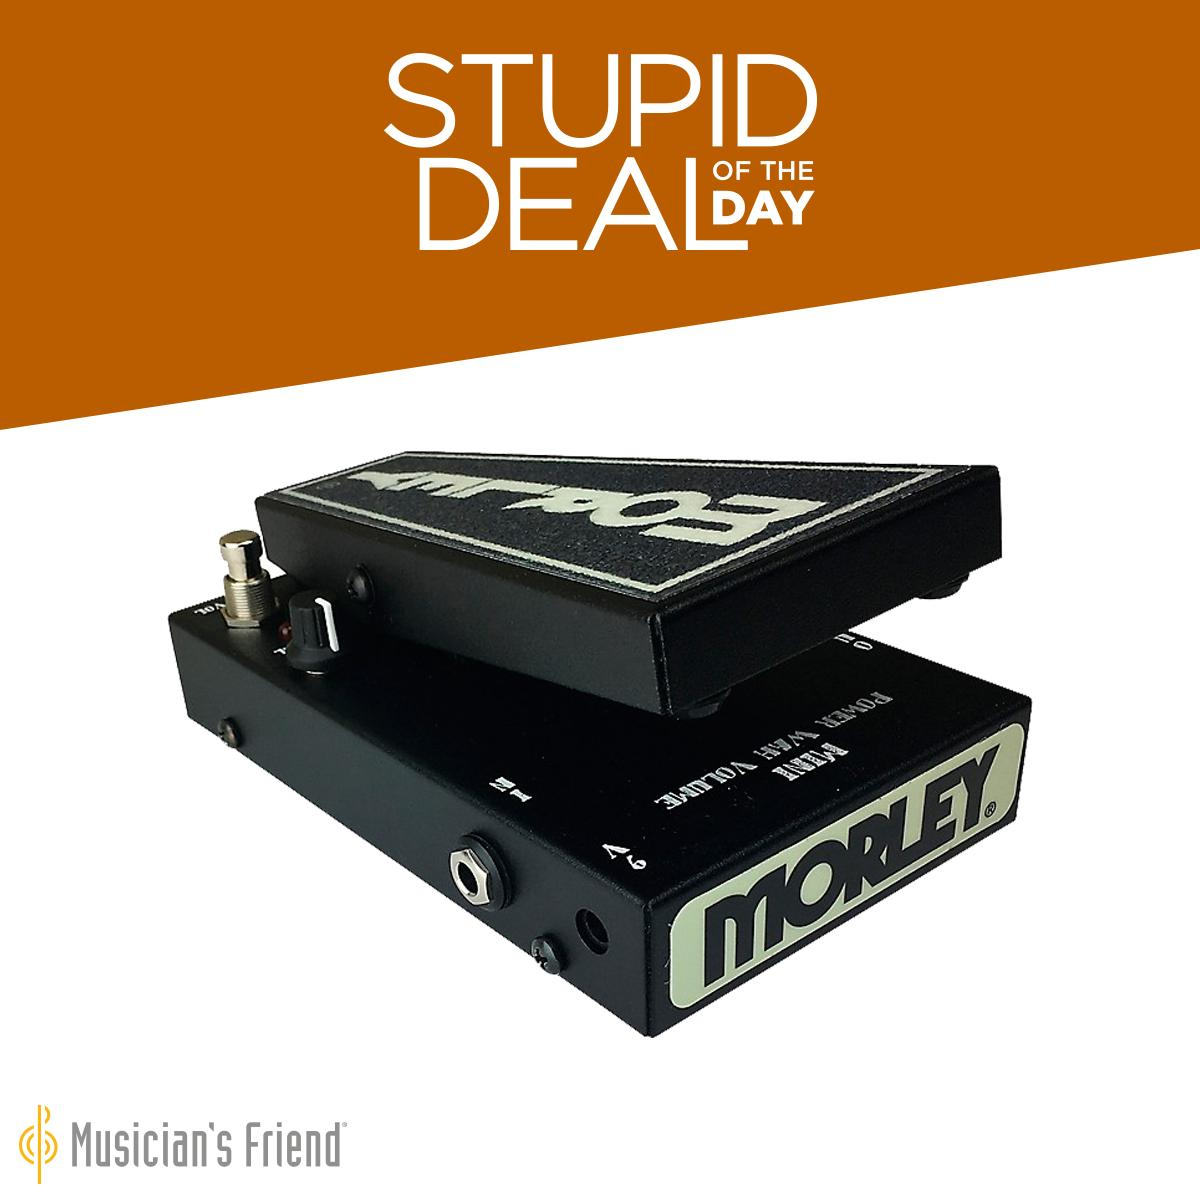 musiciansfriend com stupid deal of the day